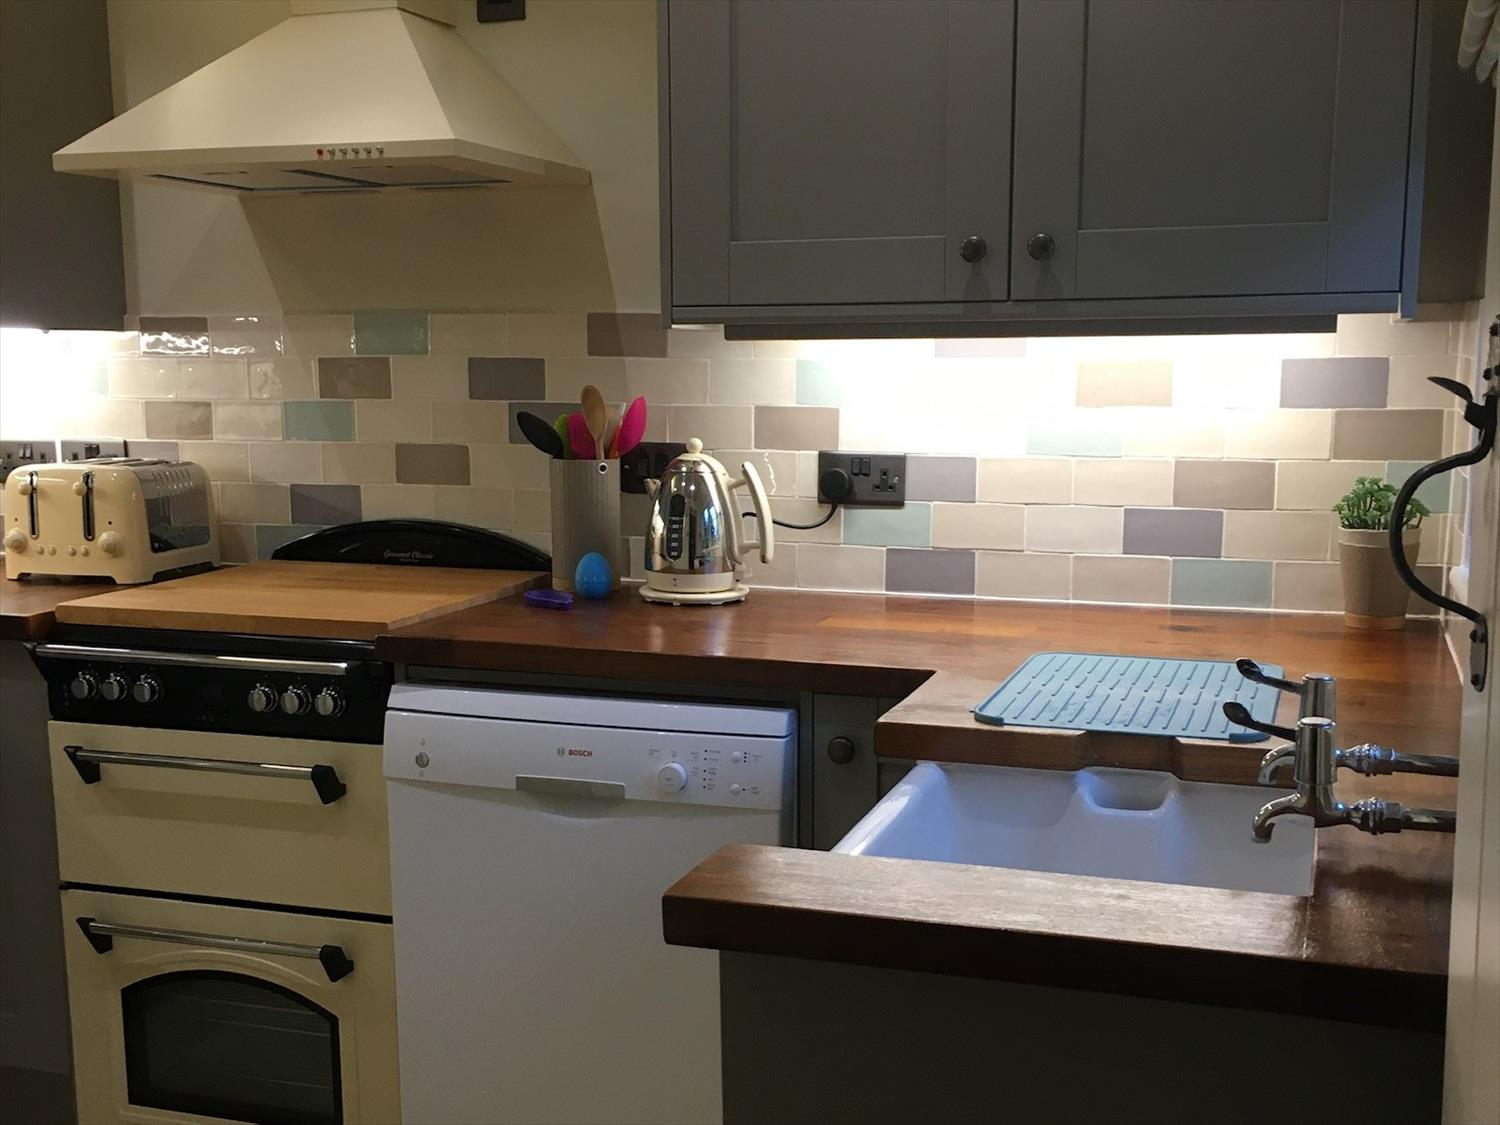 Kitchen, Dualit toaster, kettle, dishwasher, electric oven and hob @NorfolkCoastline